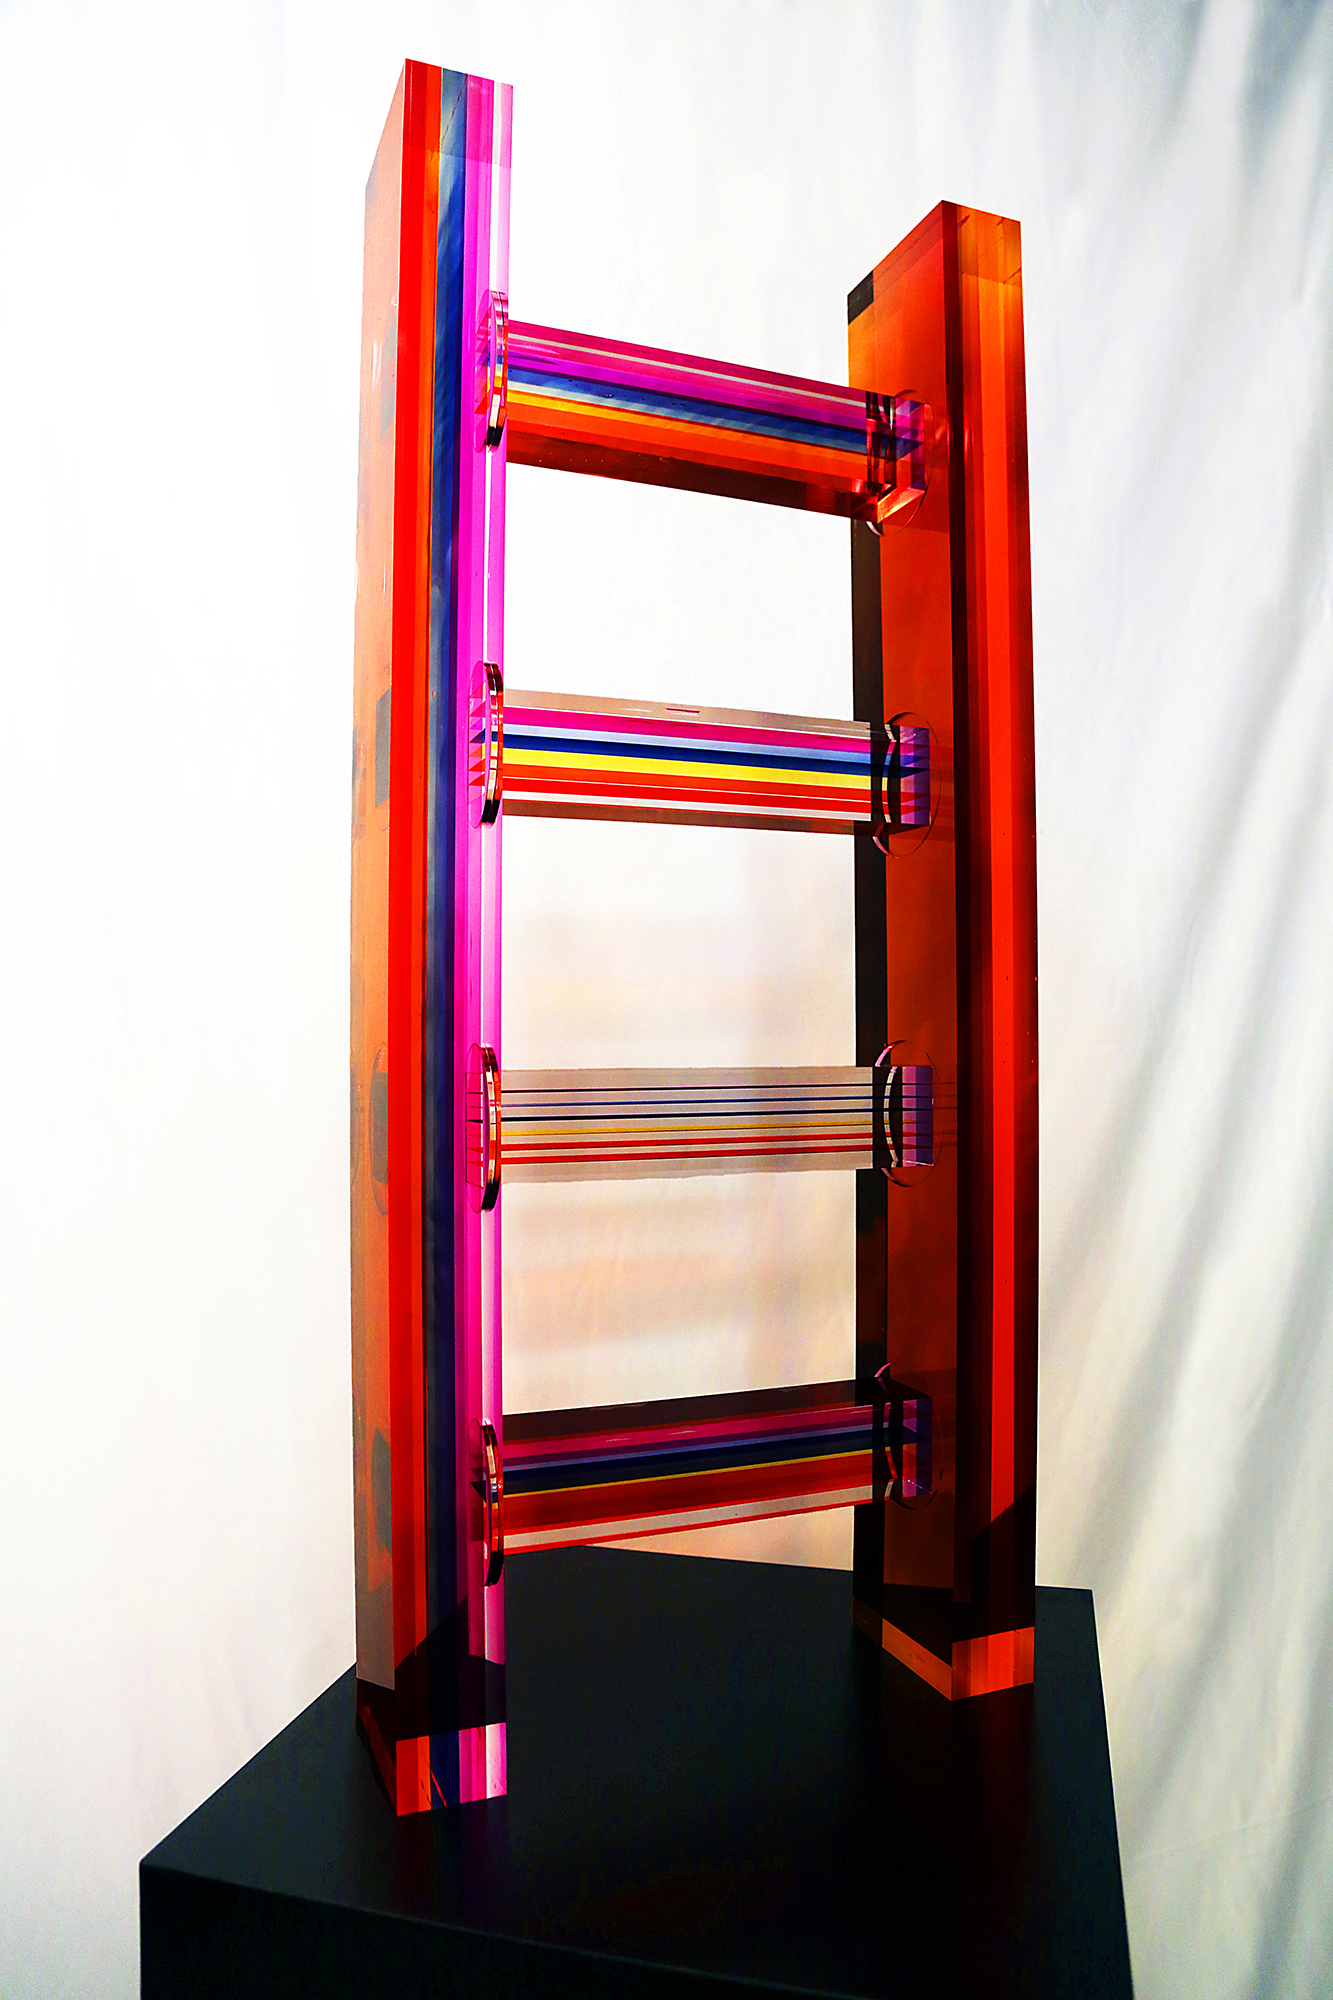 4 rung ladder sculpture made of rainbow infused acrylic